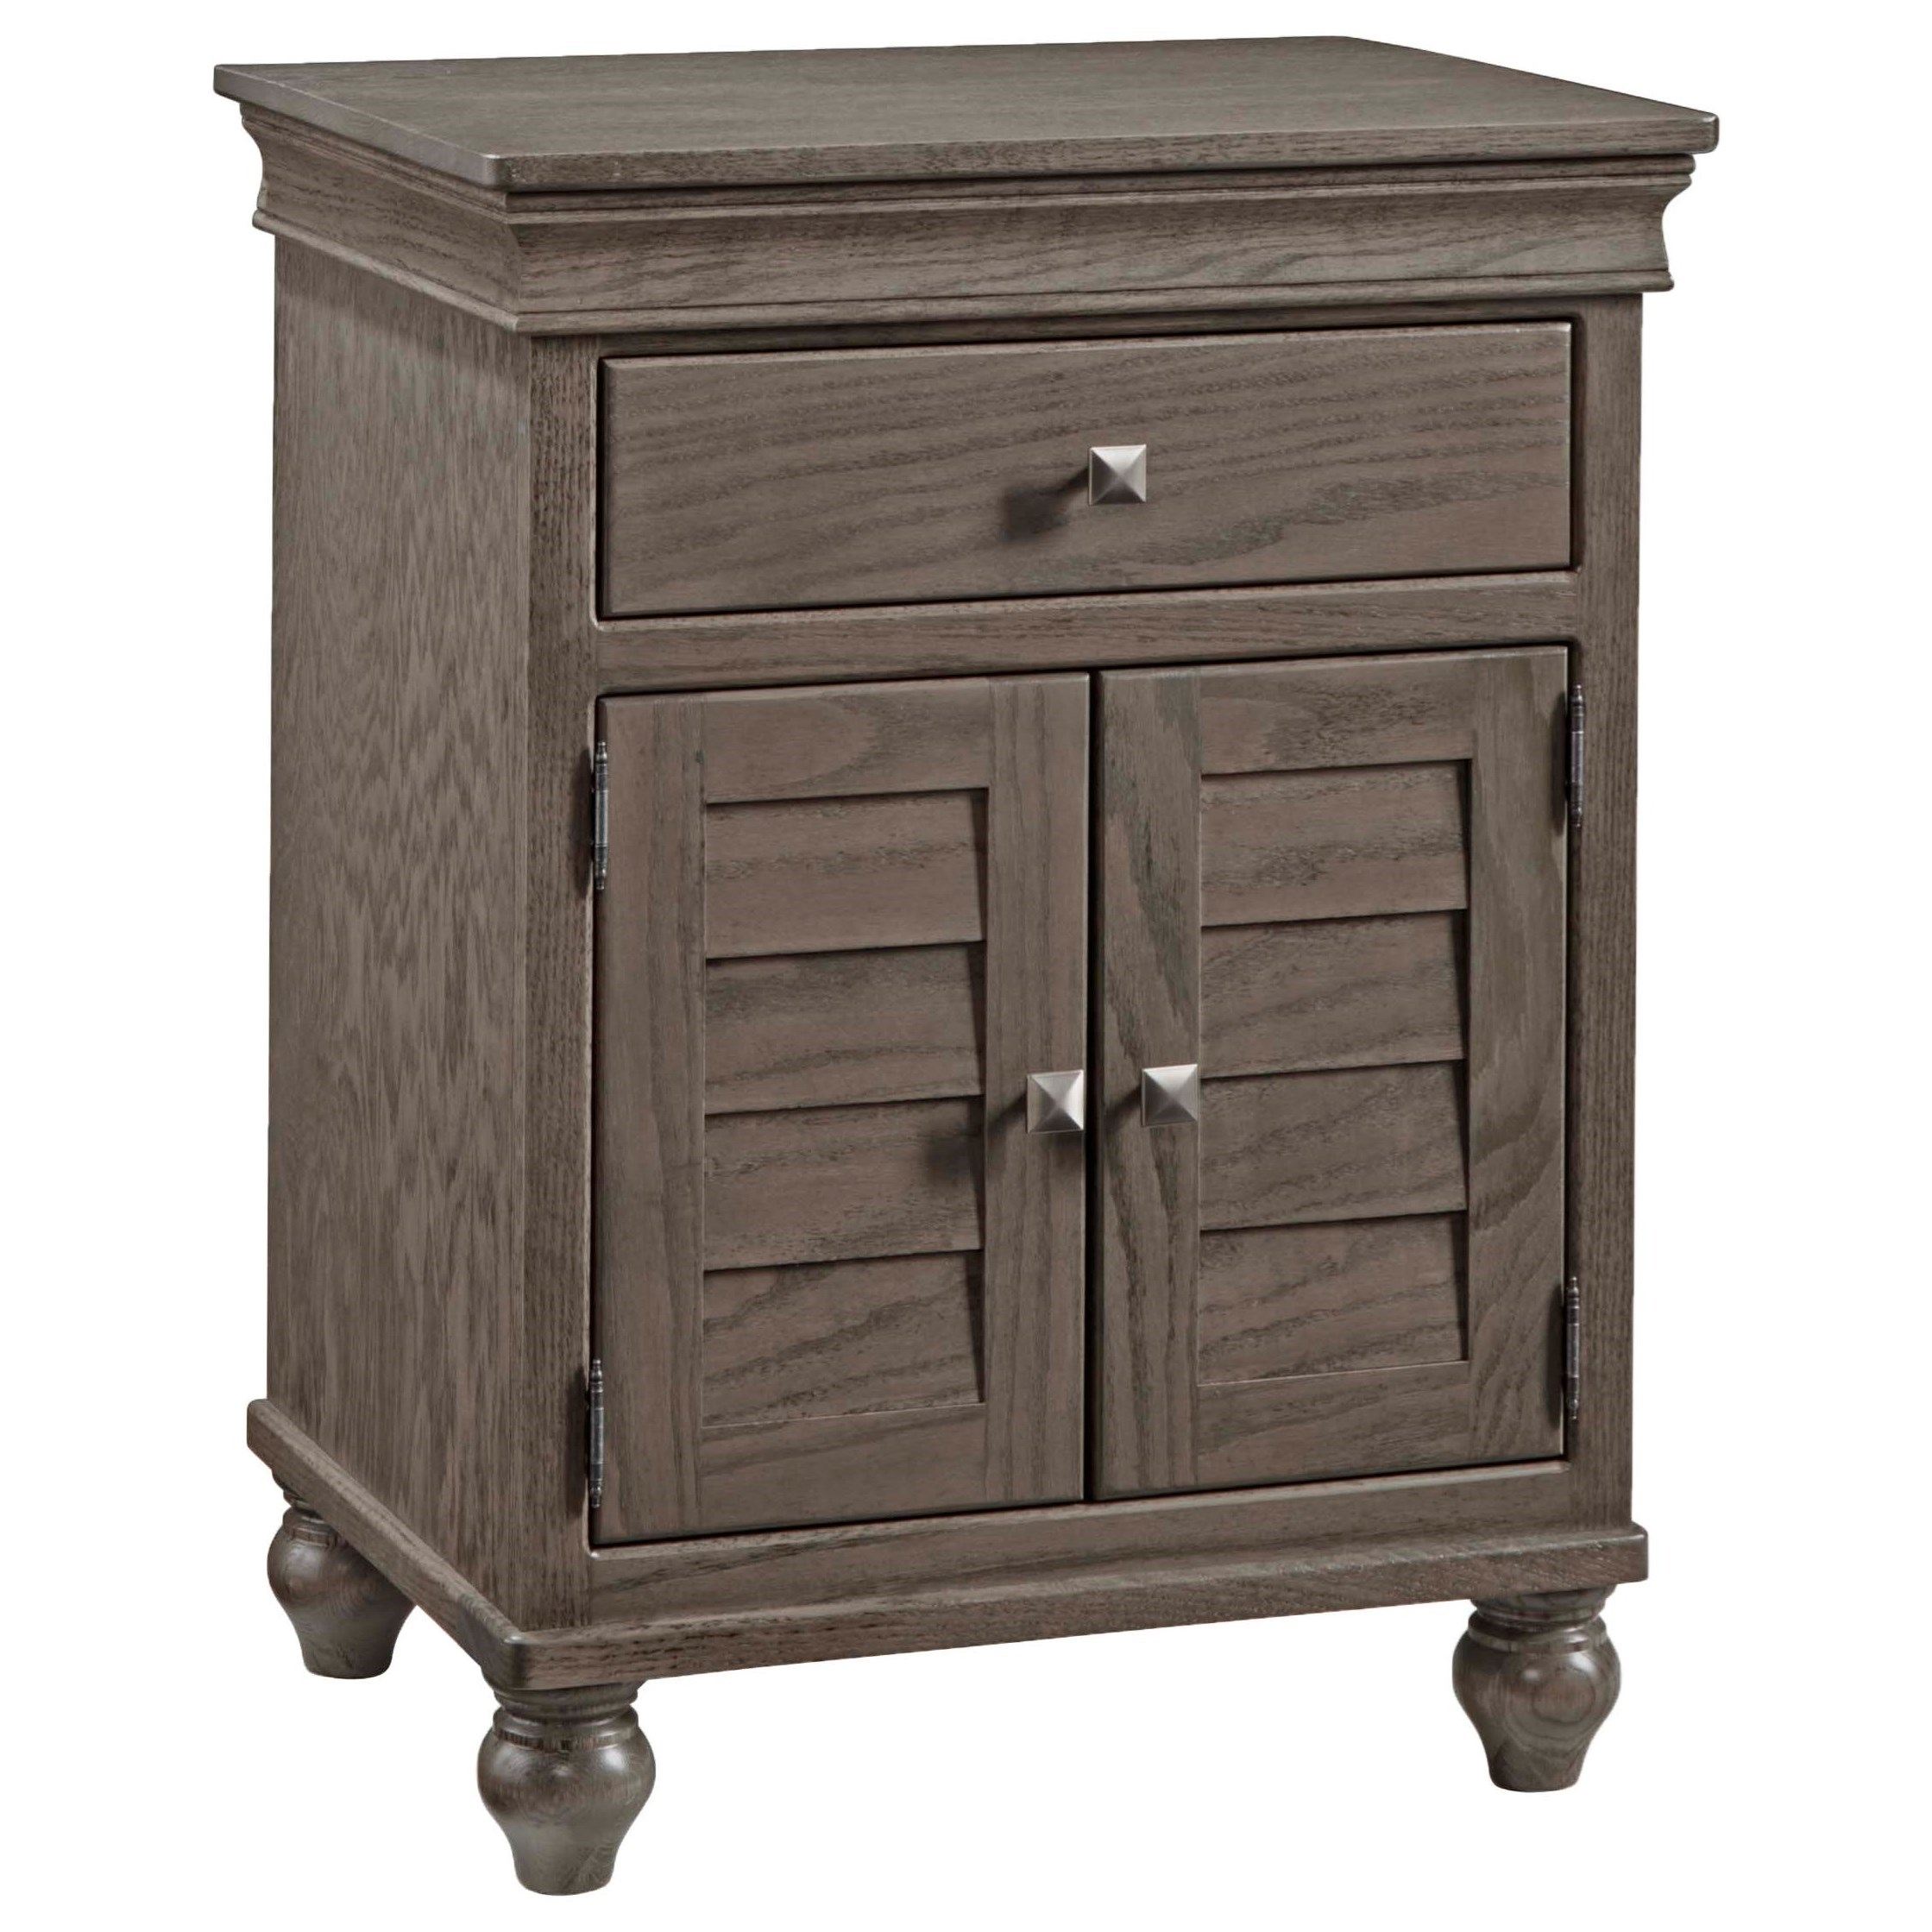 Cottage Nightstand by Daniel's Amish at Saugerties Furniture Mart